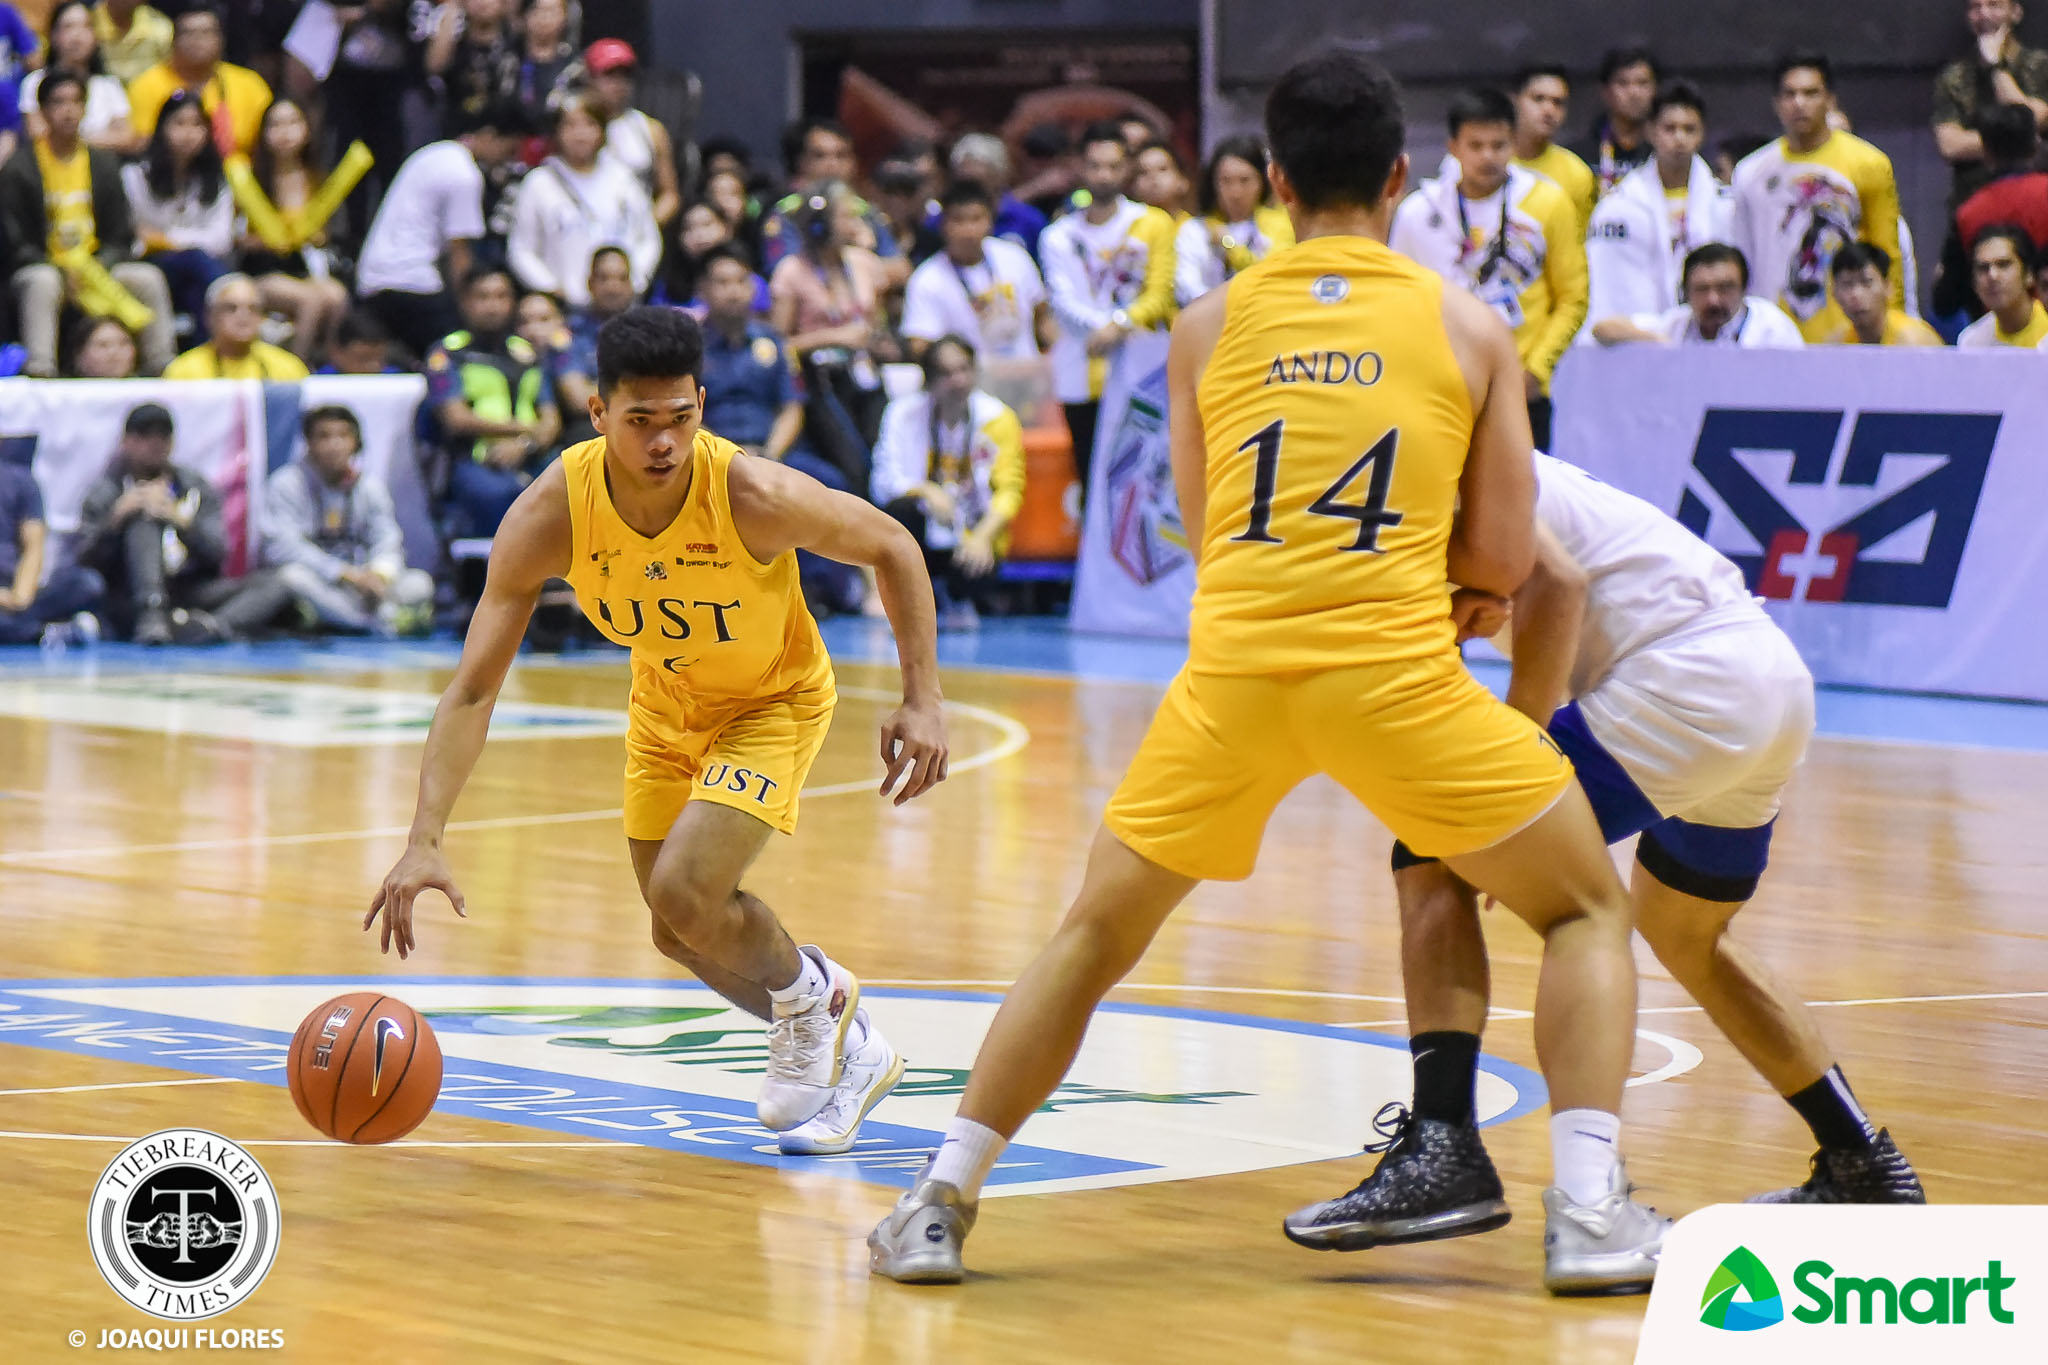 UAAP-82-MBB-Finals-G1-ADMU-vs.-UST-Nonoy-2961 Fast and Furious tandem with Mark Nonoy excites Evan Nelle Basketball DLSU News UAAP  - philippine sports news